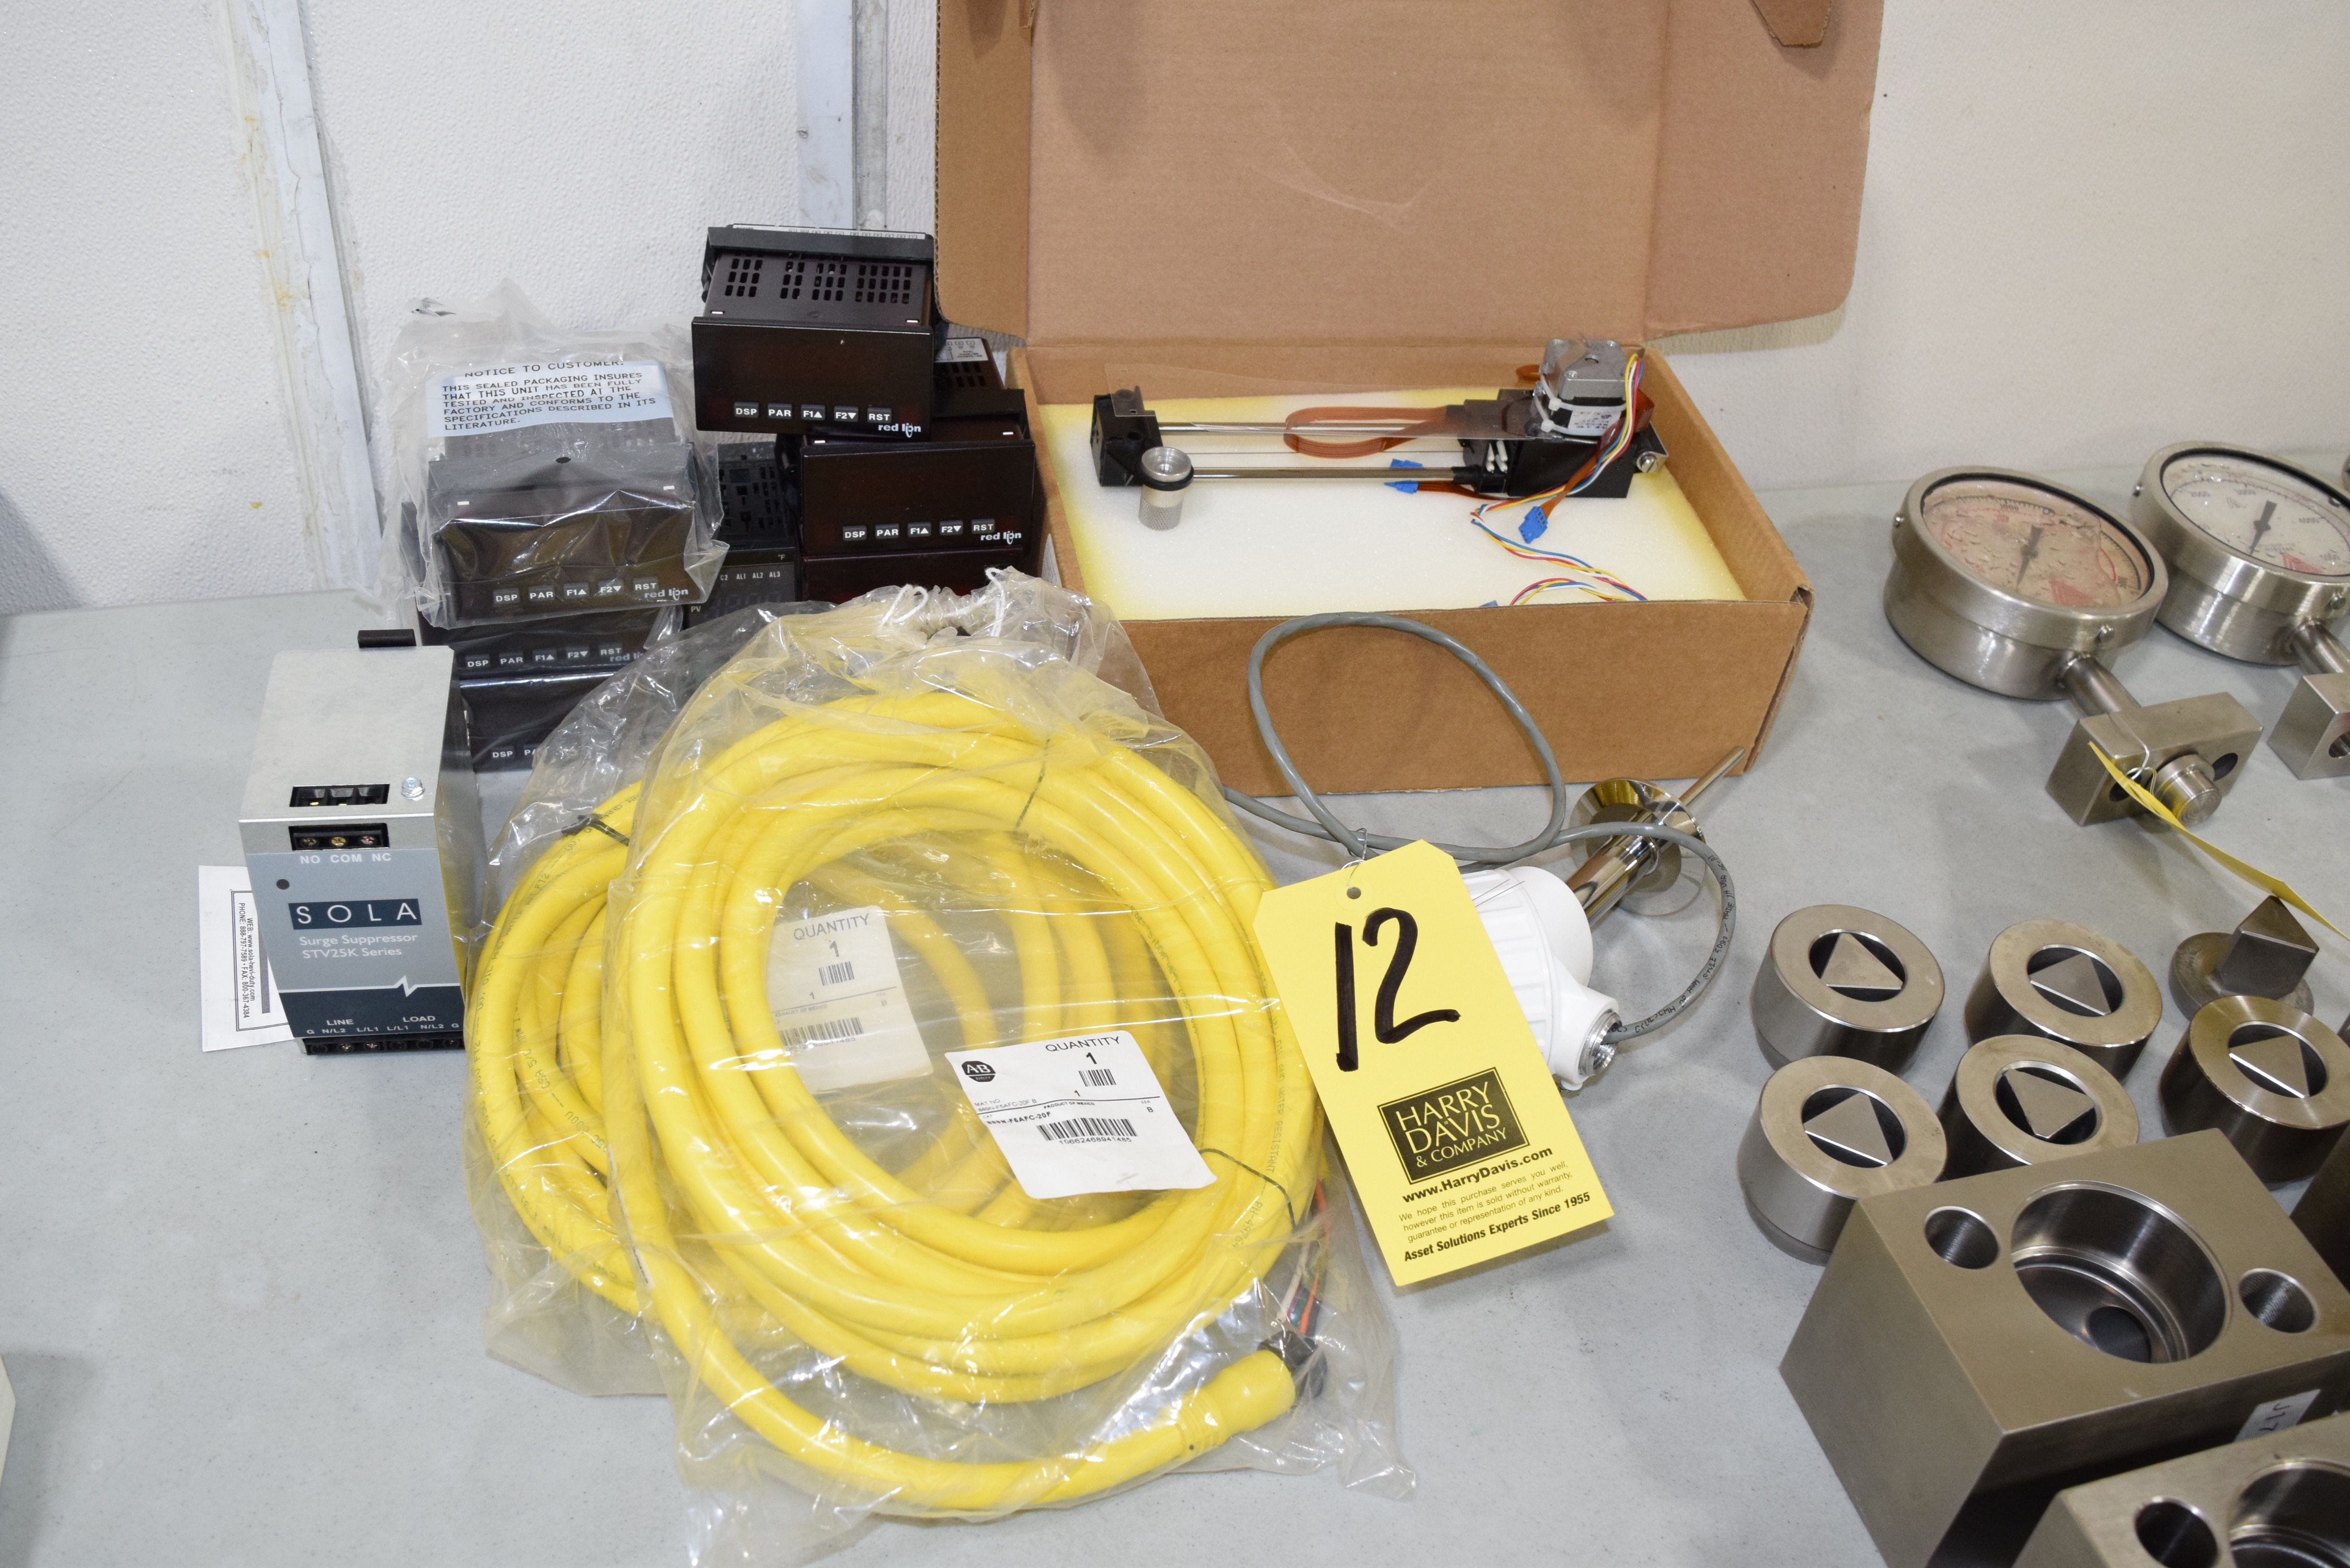 Lot 12 - Sola Power Supply, Allen Bradley Cables, Level Probe, Digital Read Outs and Anderson Recorder **